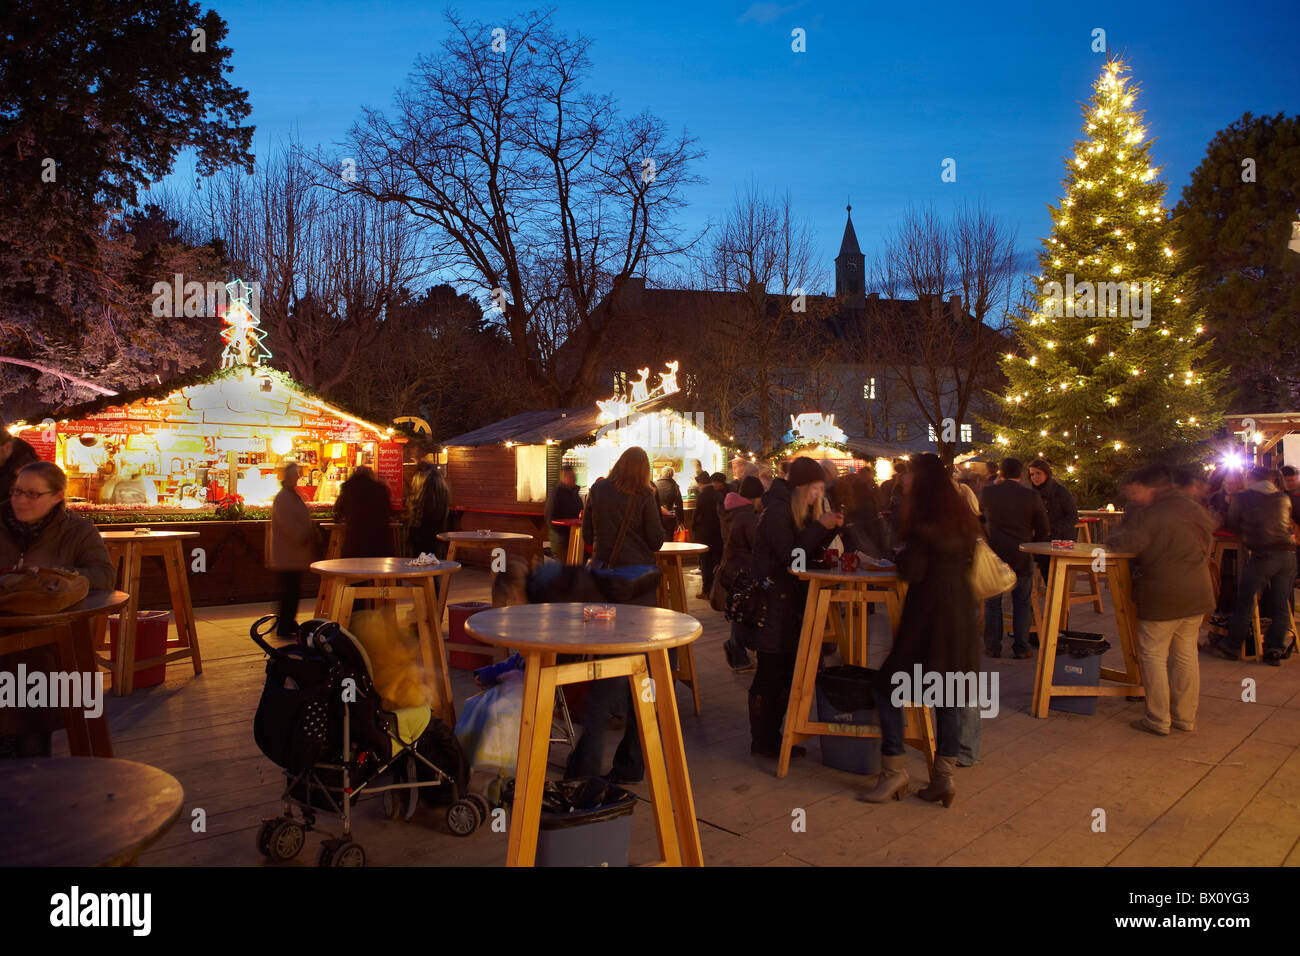 Mulled Wine Christmas Market.People Drinking Mulled Wine Christmas Market Stock Photo